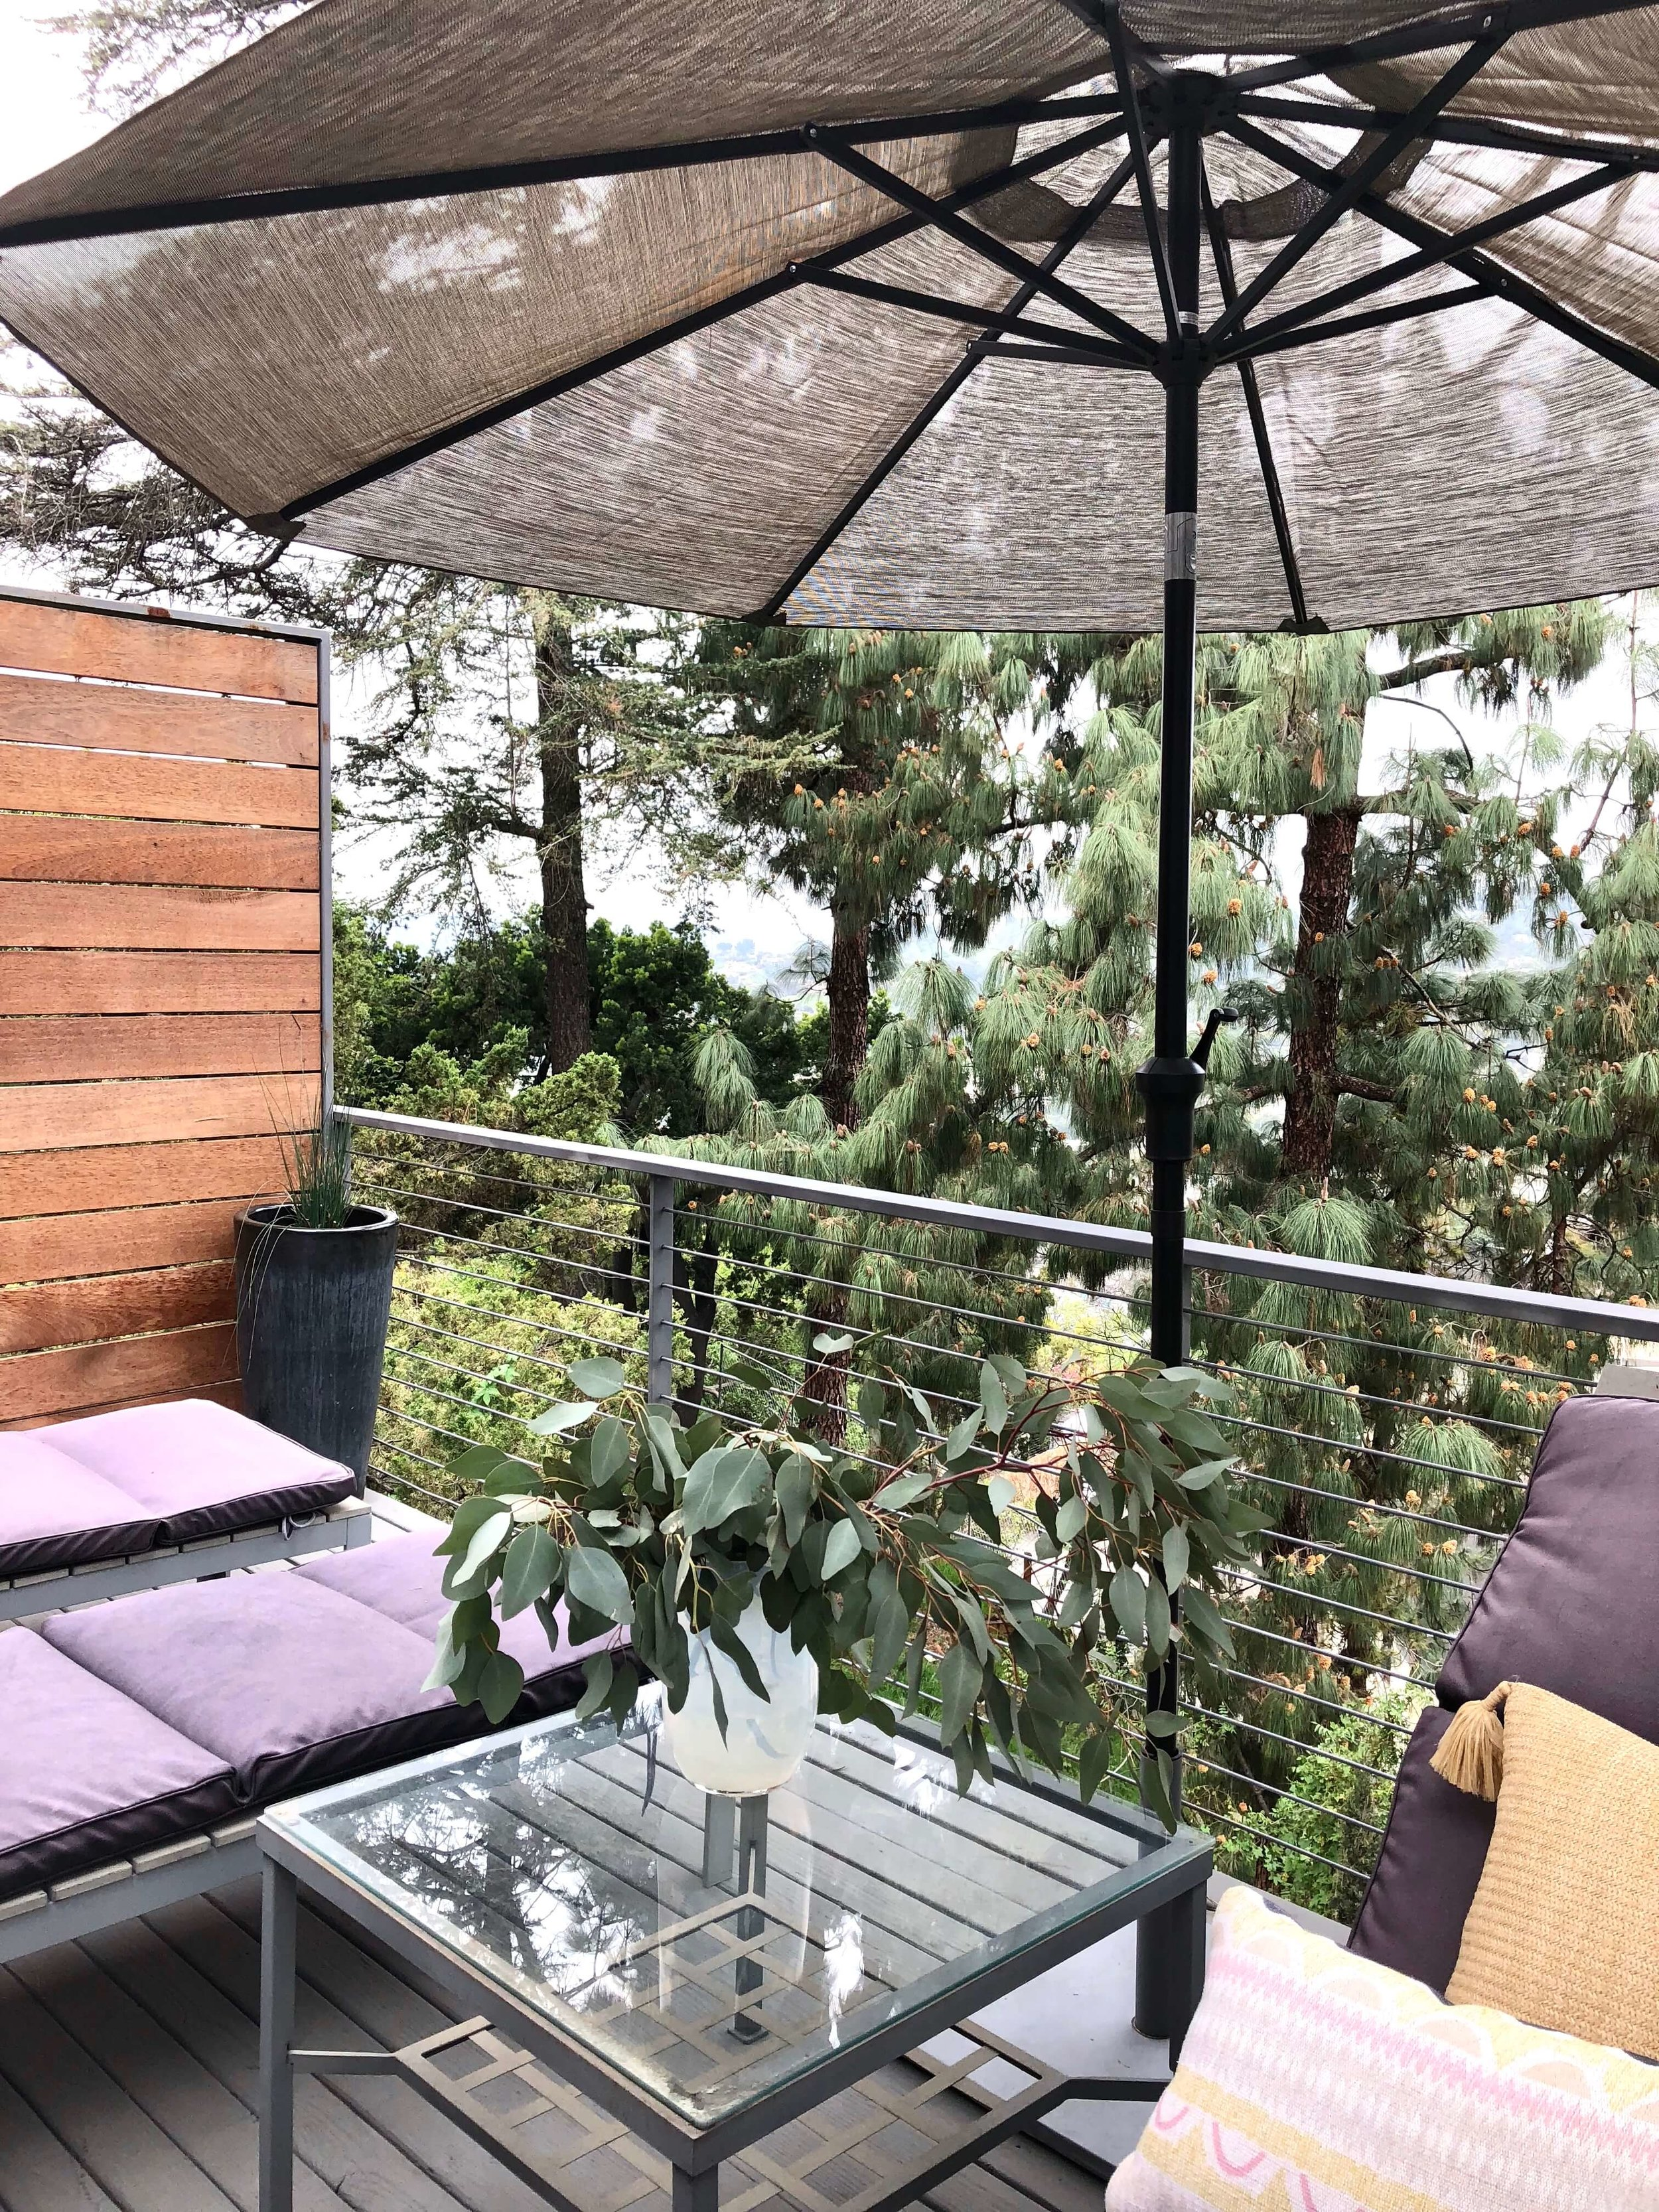 A balcony deck up the treetops on a hillside in LA - Dwell on Design home tour #deck #outdoorliving